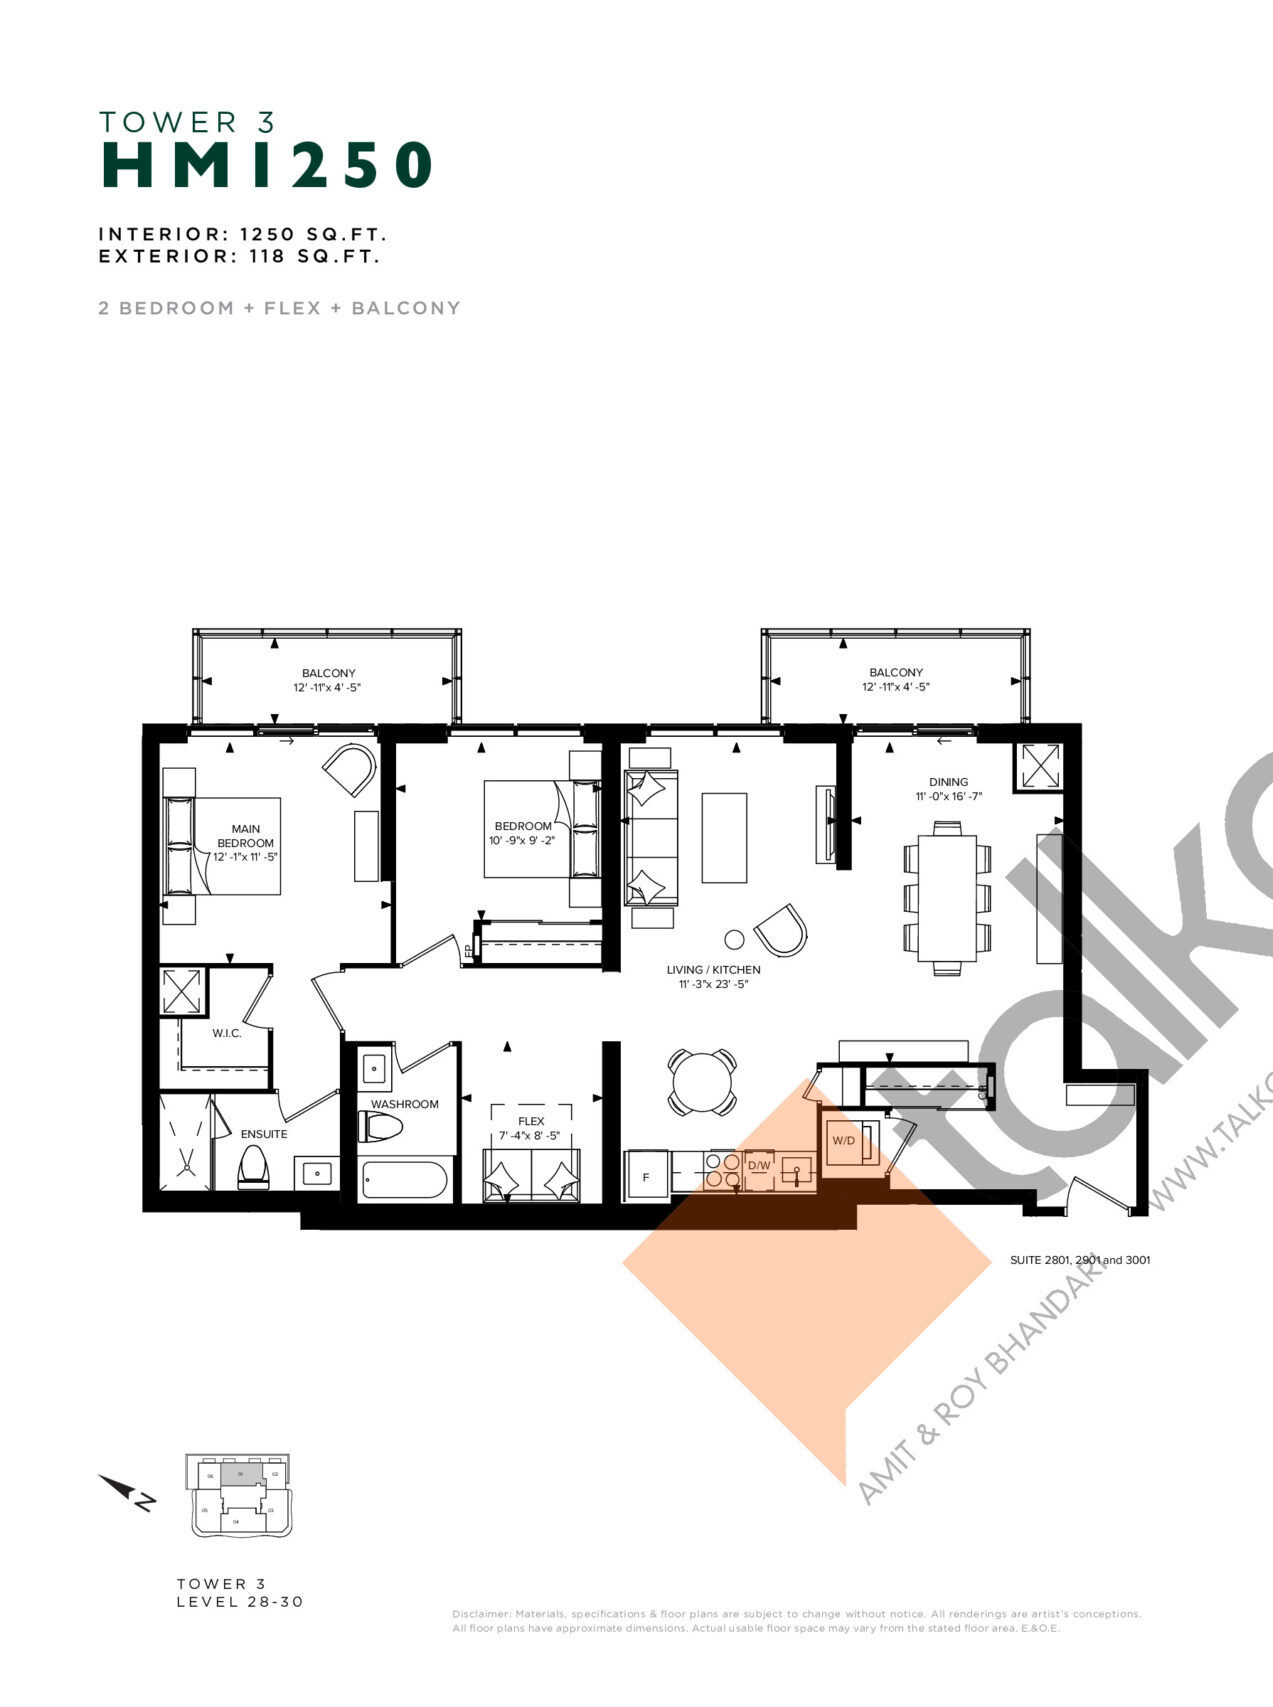 HM 1250 (Tower 3) Floor Plan at Hillmont at SXSW Condos - 1250 sq.ft